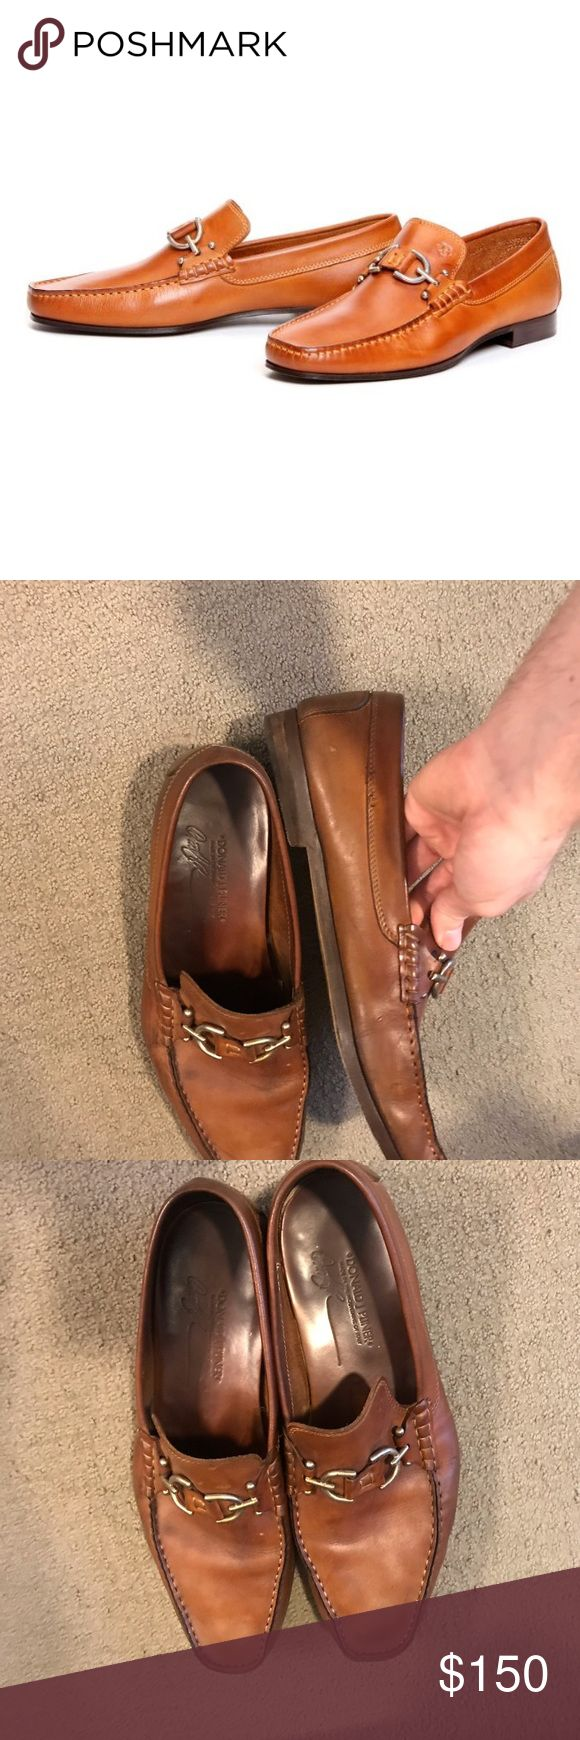 Donald J. Pliner Loafers. Gently used. Still in great condition.   Please excerc...